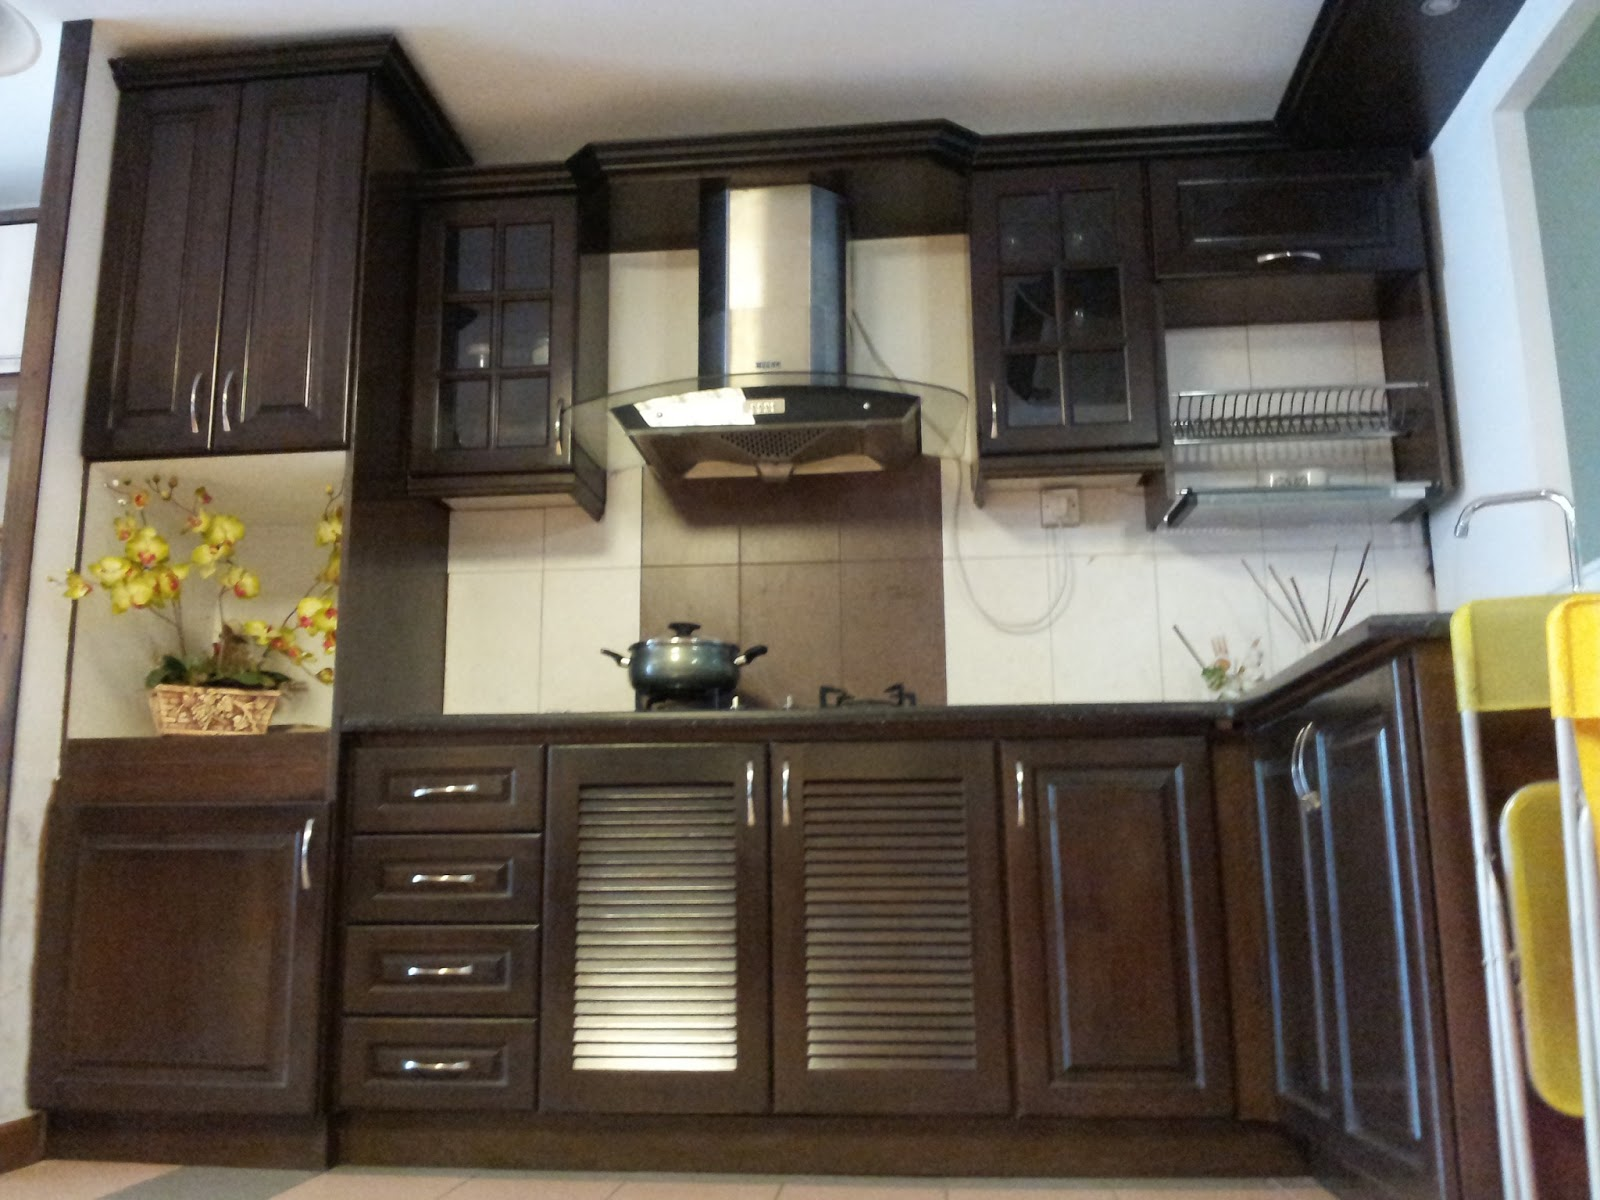 Abs Kitchen Kitchen Package 10ft Kabinet Dapur Pakej 10ft